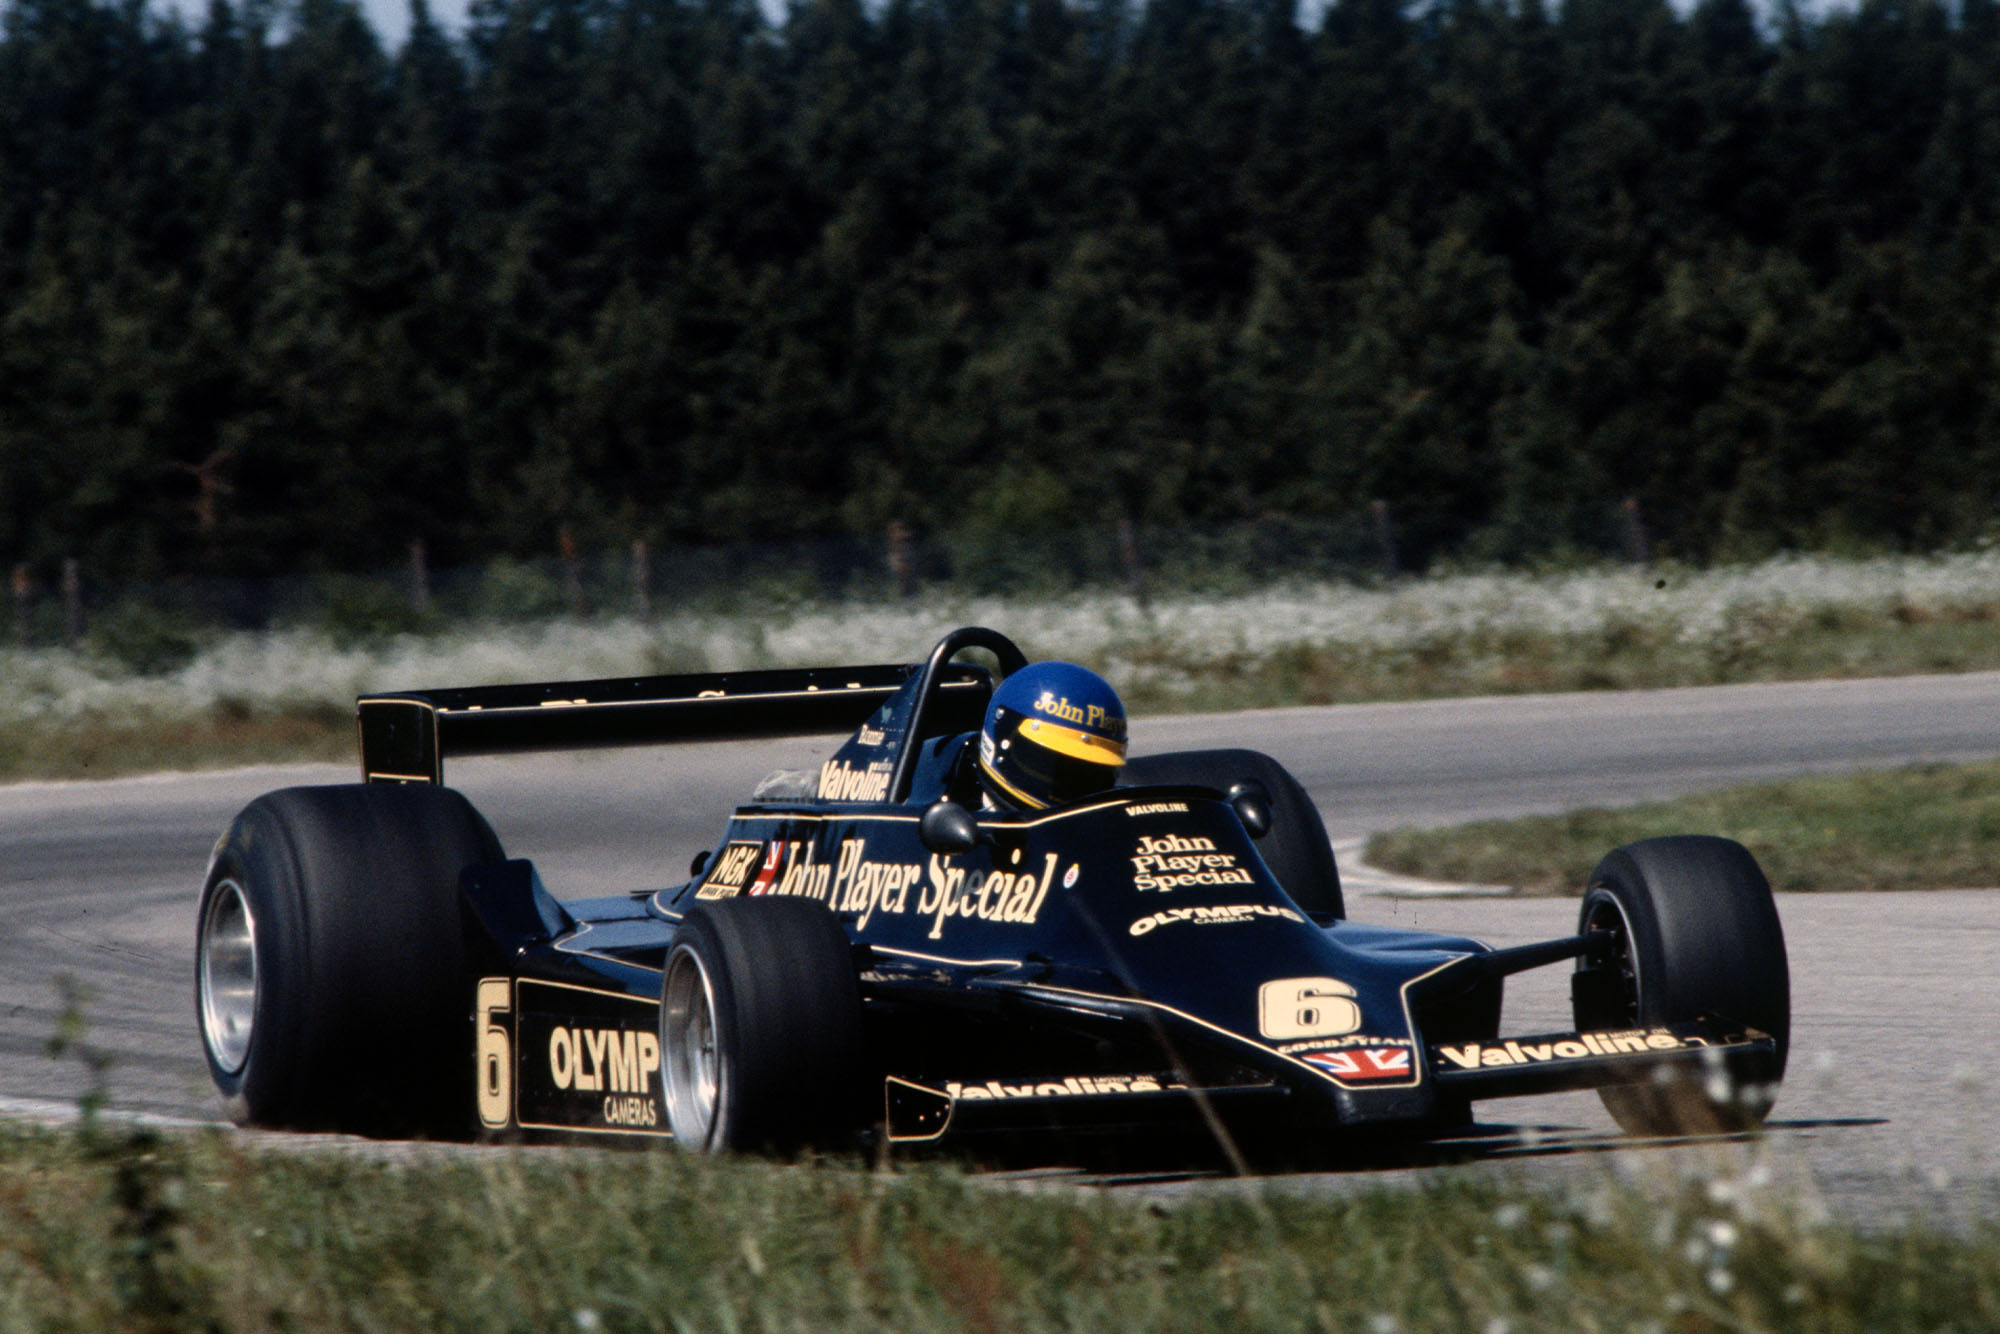 Ronnie Peterson (Lotus) at the 1978 Swedish Grand Prix, Anderstorp.